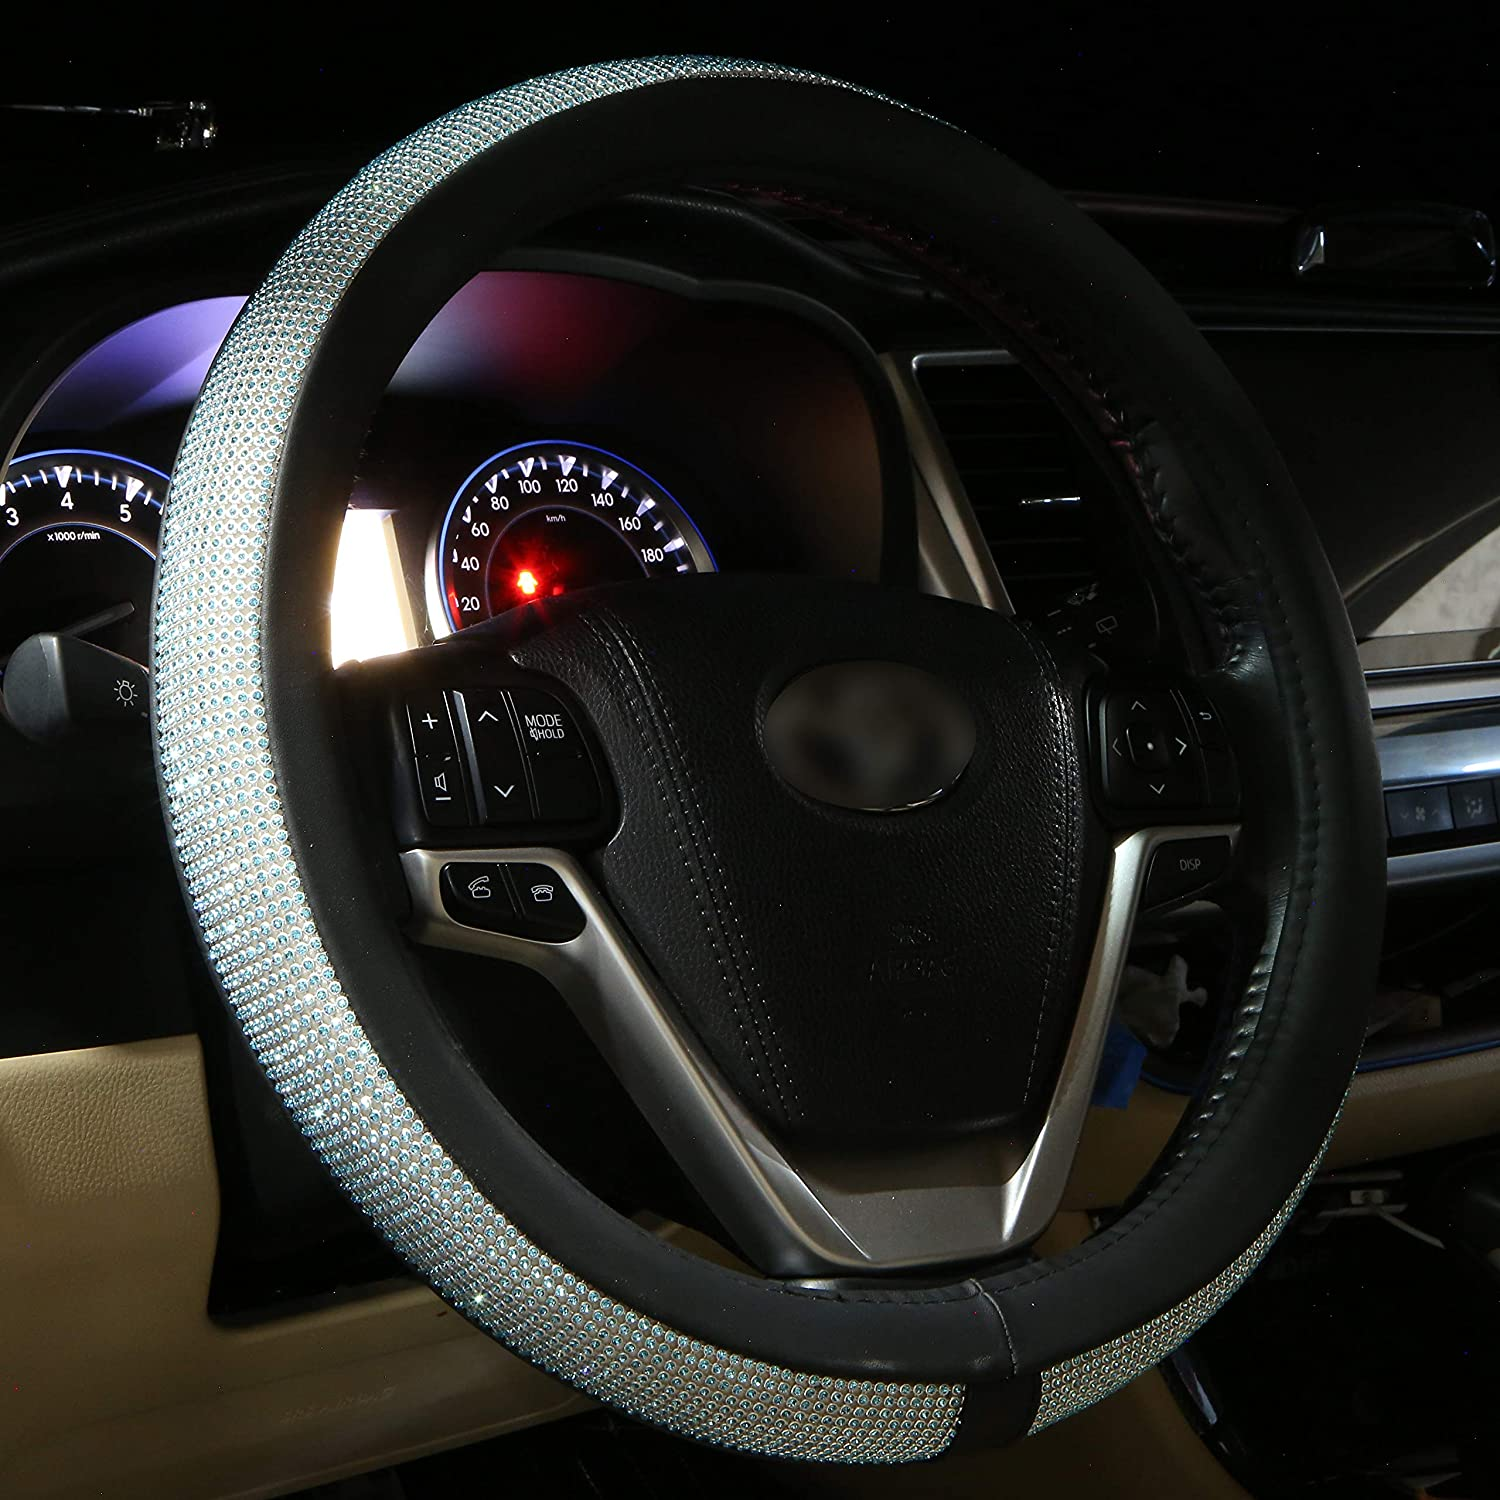 Diamond Leather Steering Wheel Cover for Women Girls with Bling Bling Crystal Rhinestones Silver Universal Fit 15 Inch Anti-Slip Wheel Protector